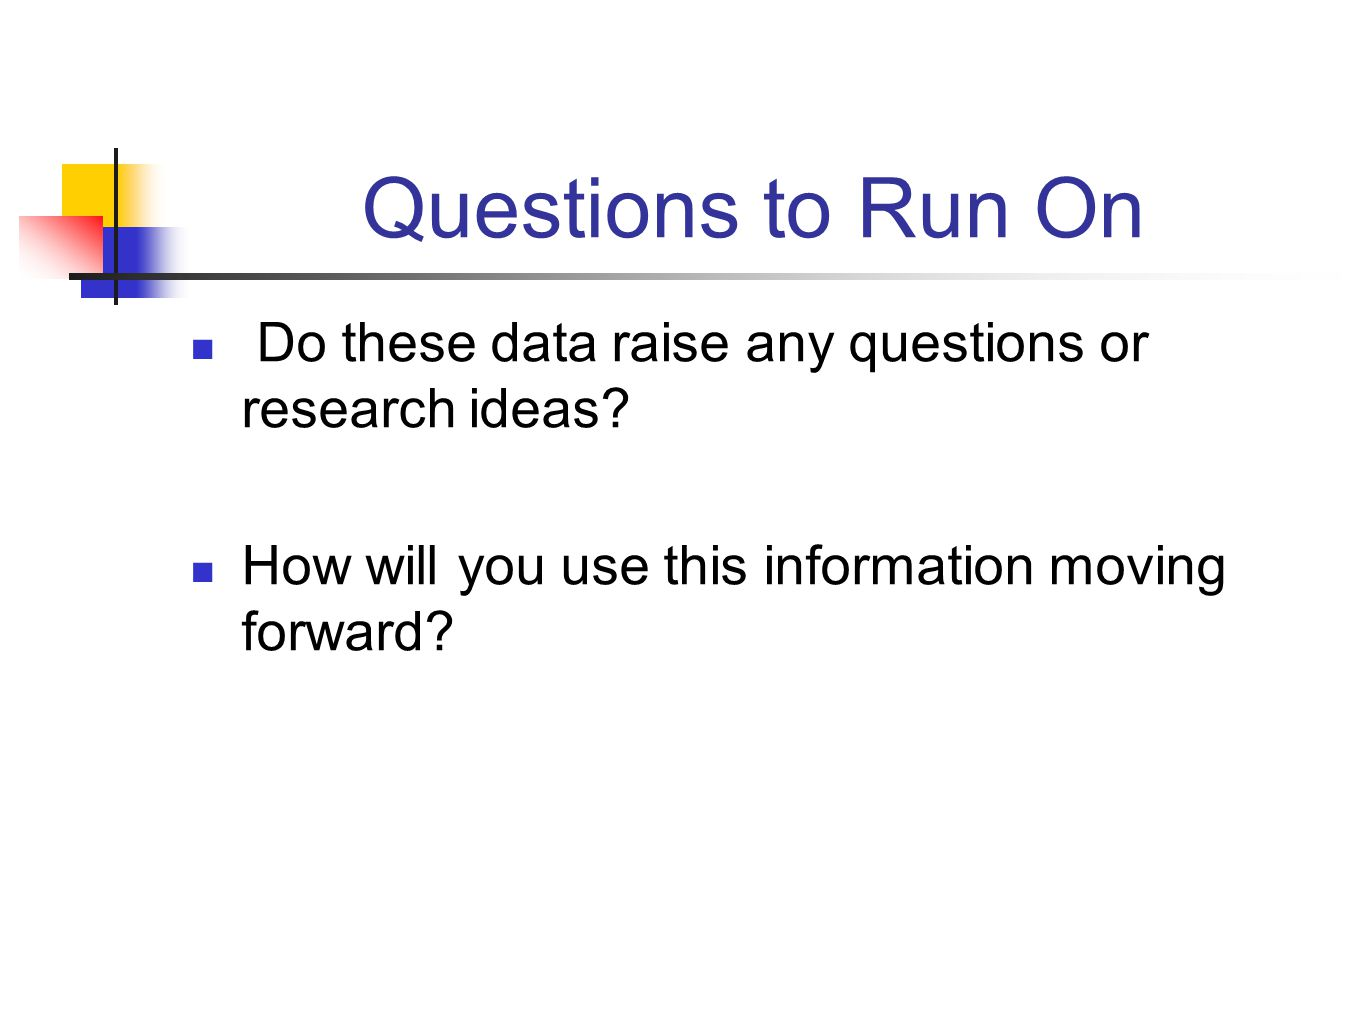 Questions to Run On Do these data raise any questions or research ideas? How will you use this information moving forward?